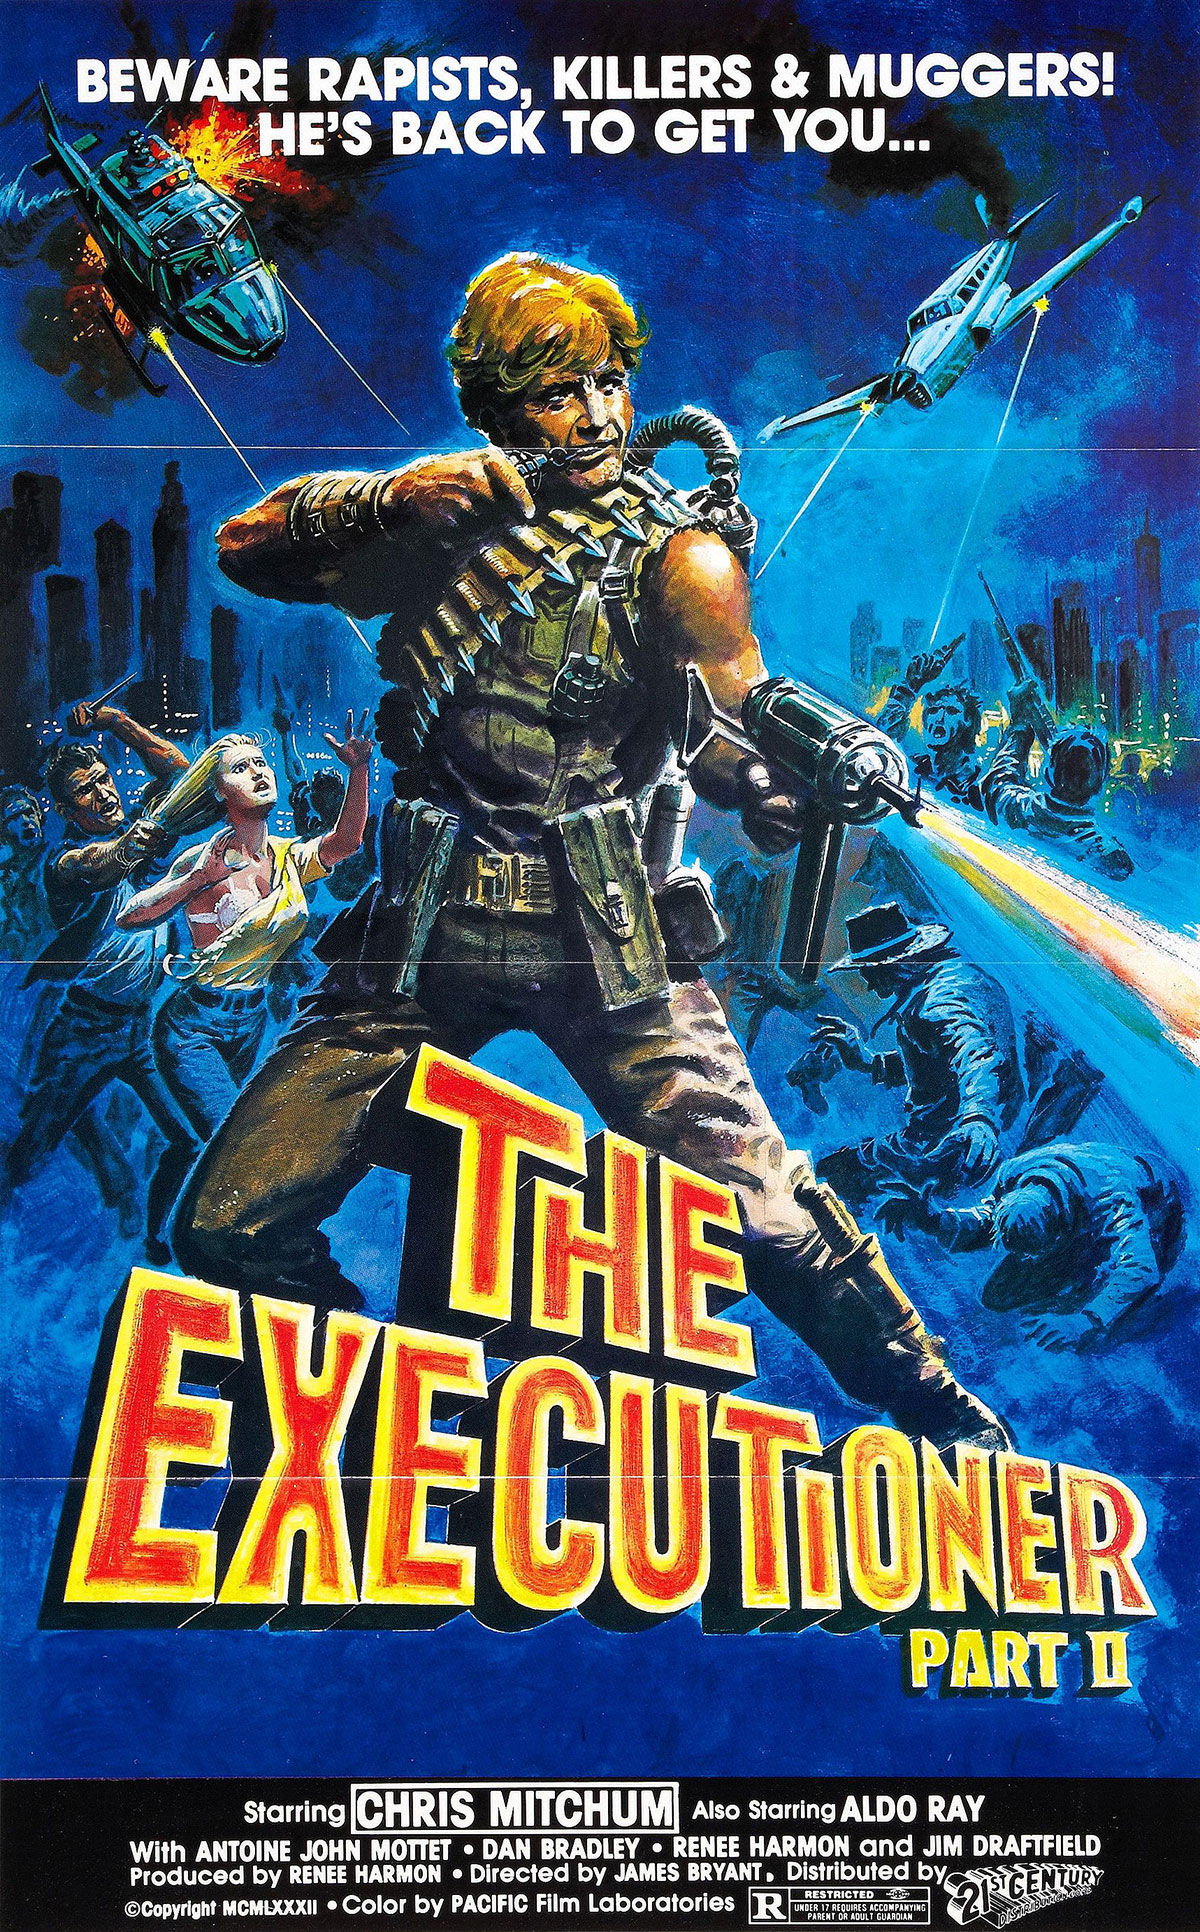 The Executioner, Part II movie poster